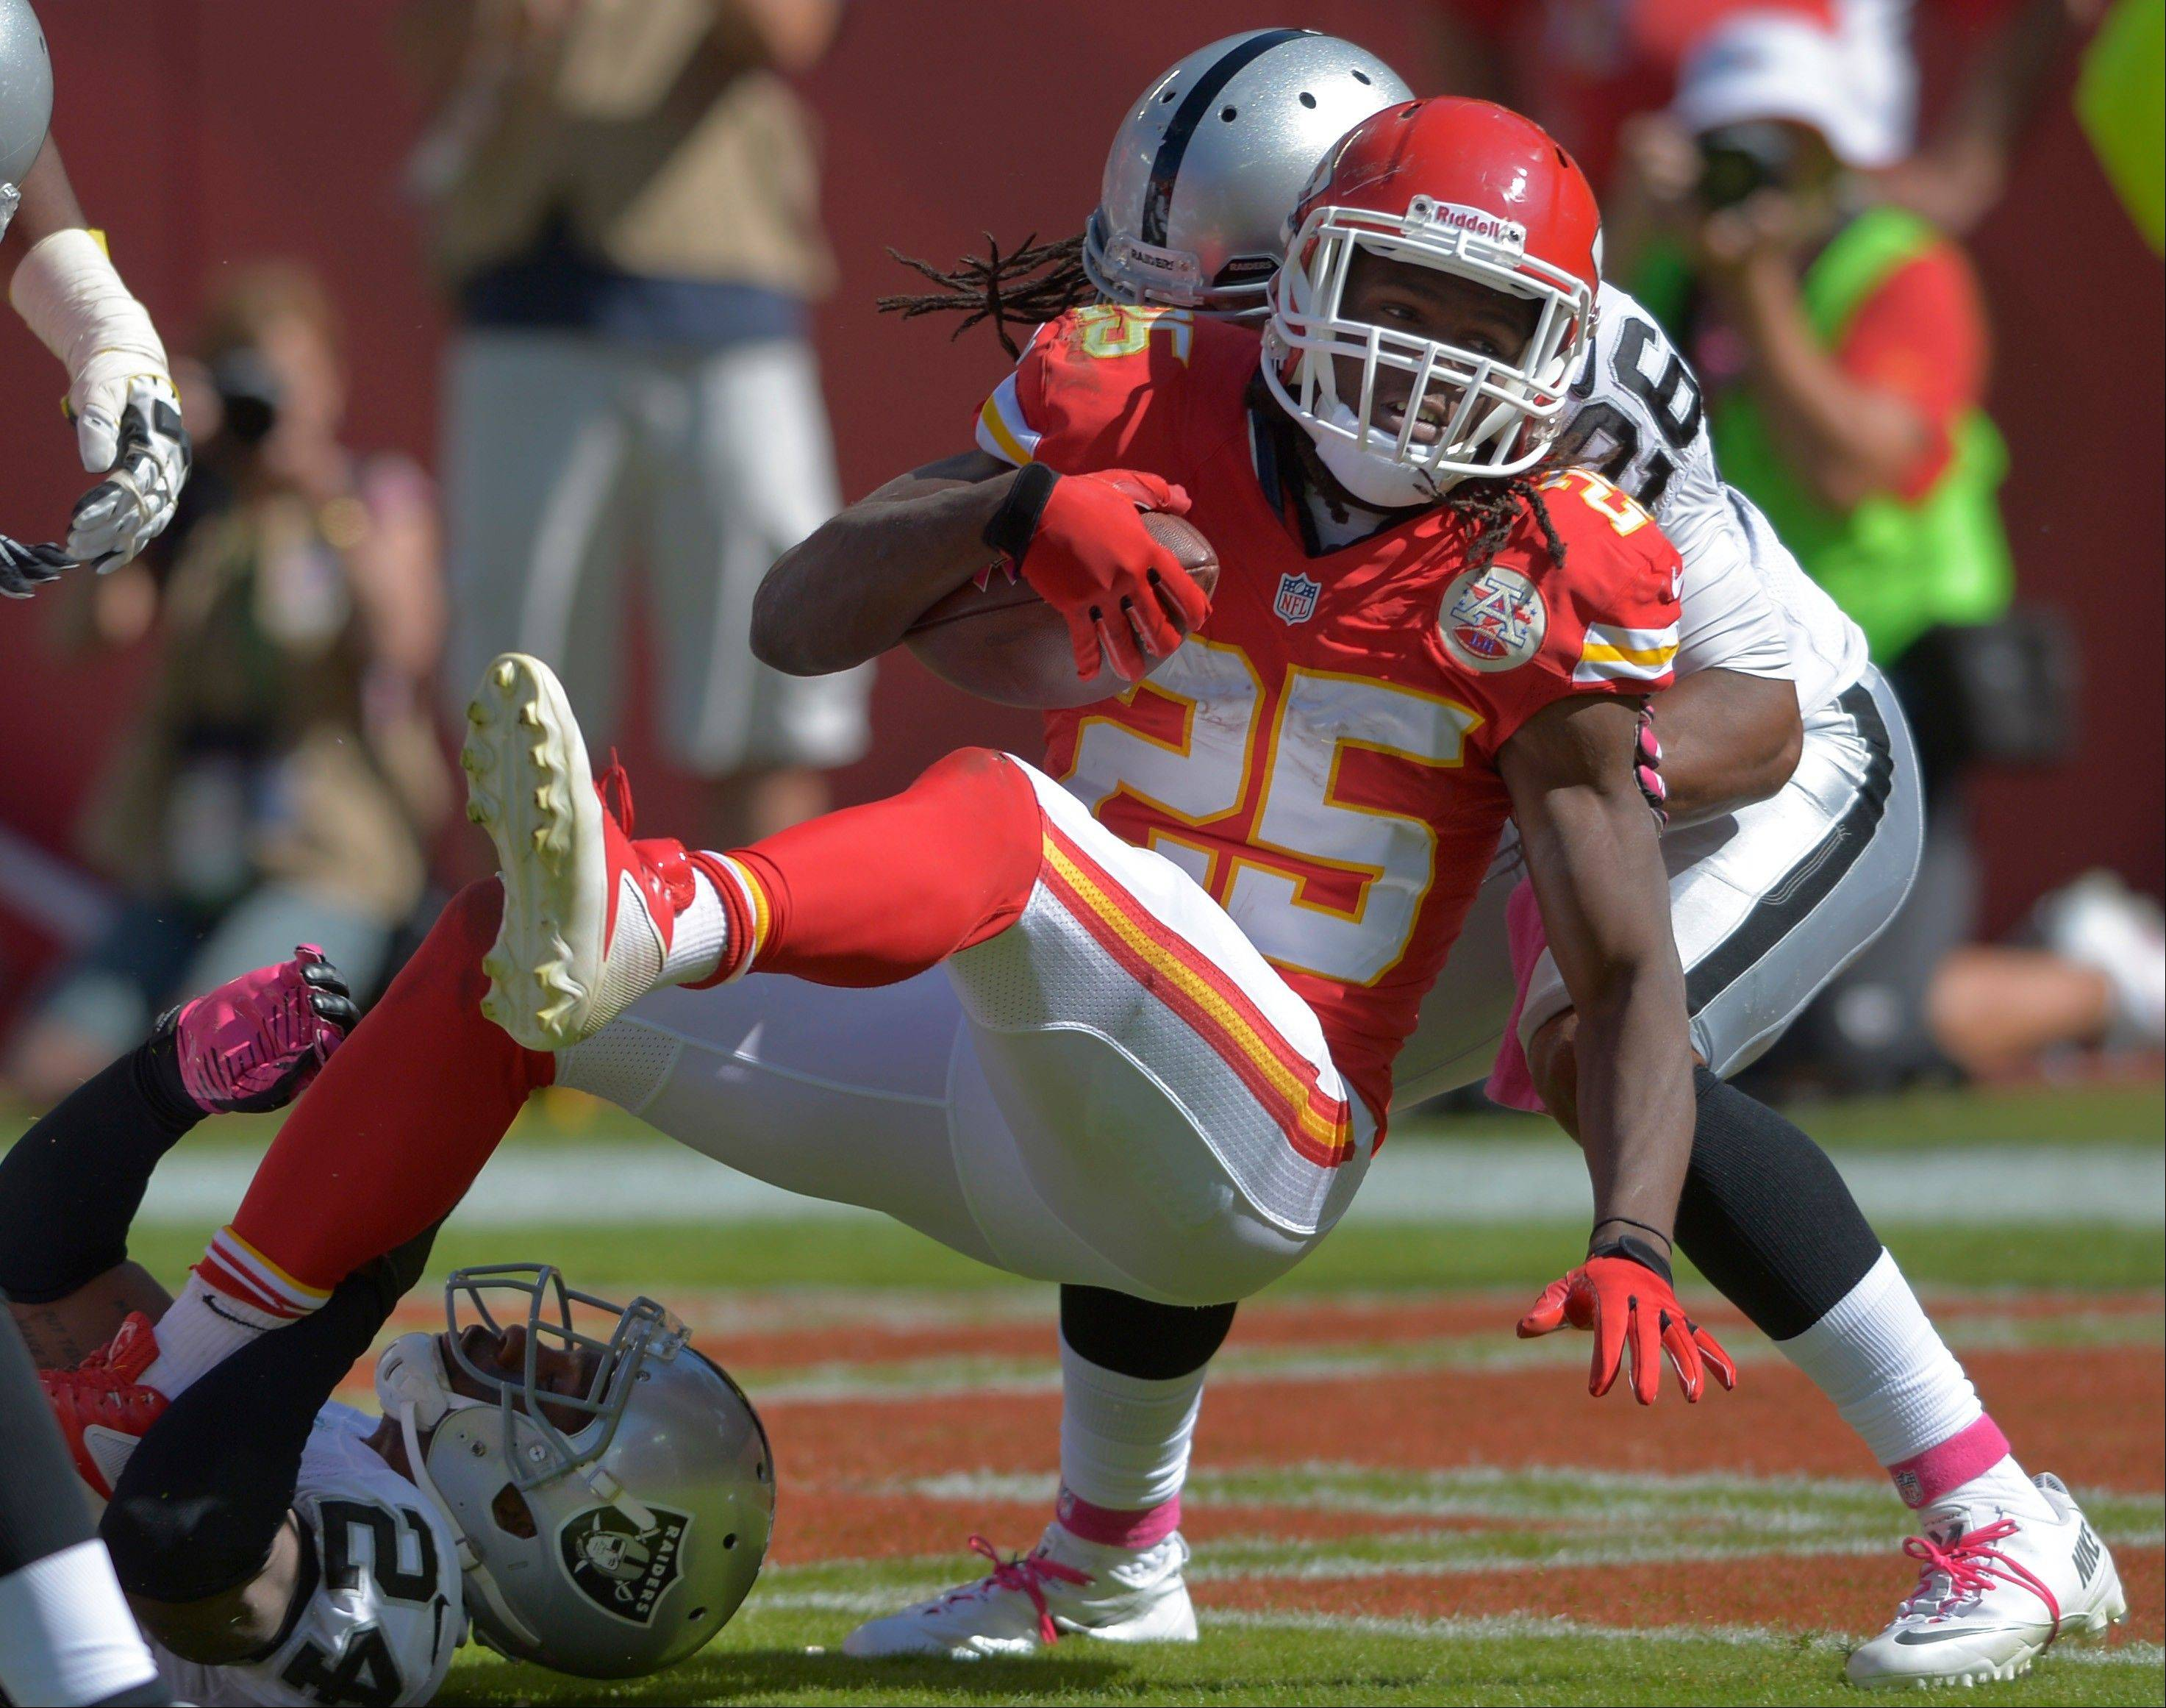 Chiefs running back Jamaal Charles crosses the goal line for a touchdown as Oakland free safety Usama Young defends during the first half of Sunday�s game in Kansas City, Mo.